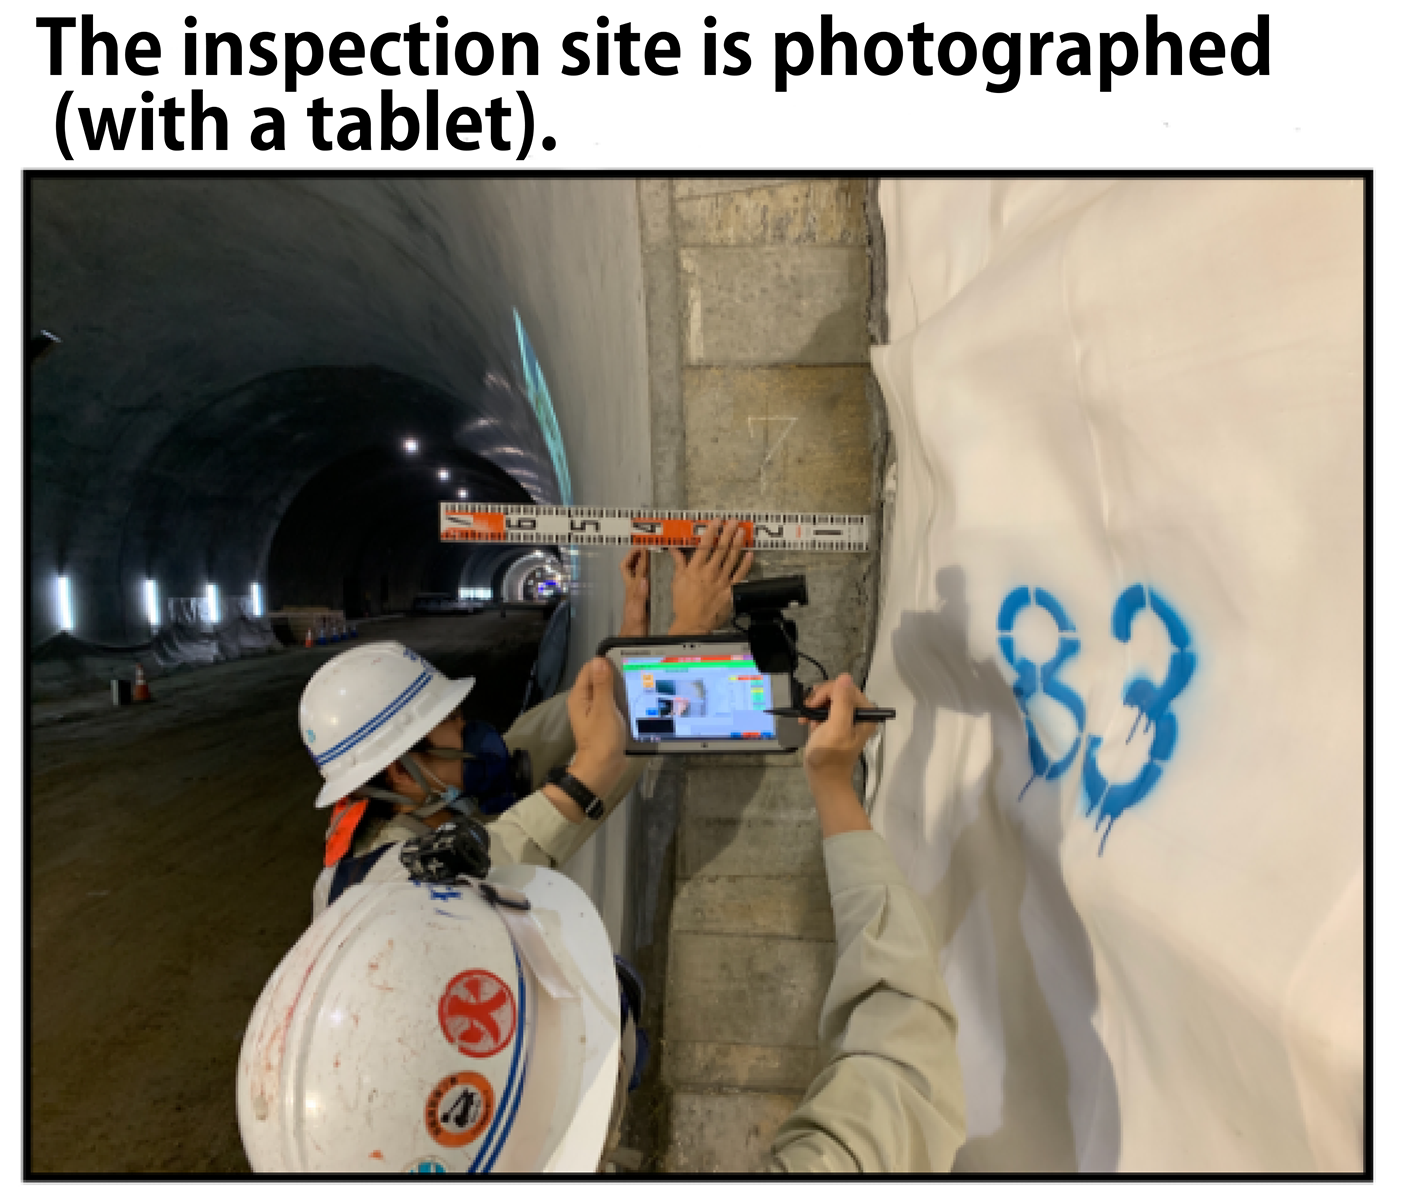 The inspection spot is photographed (with a tablet)